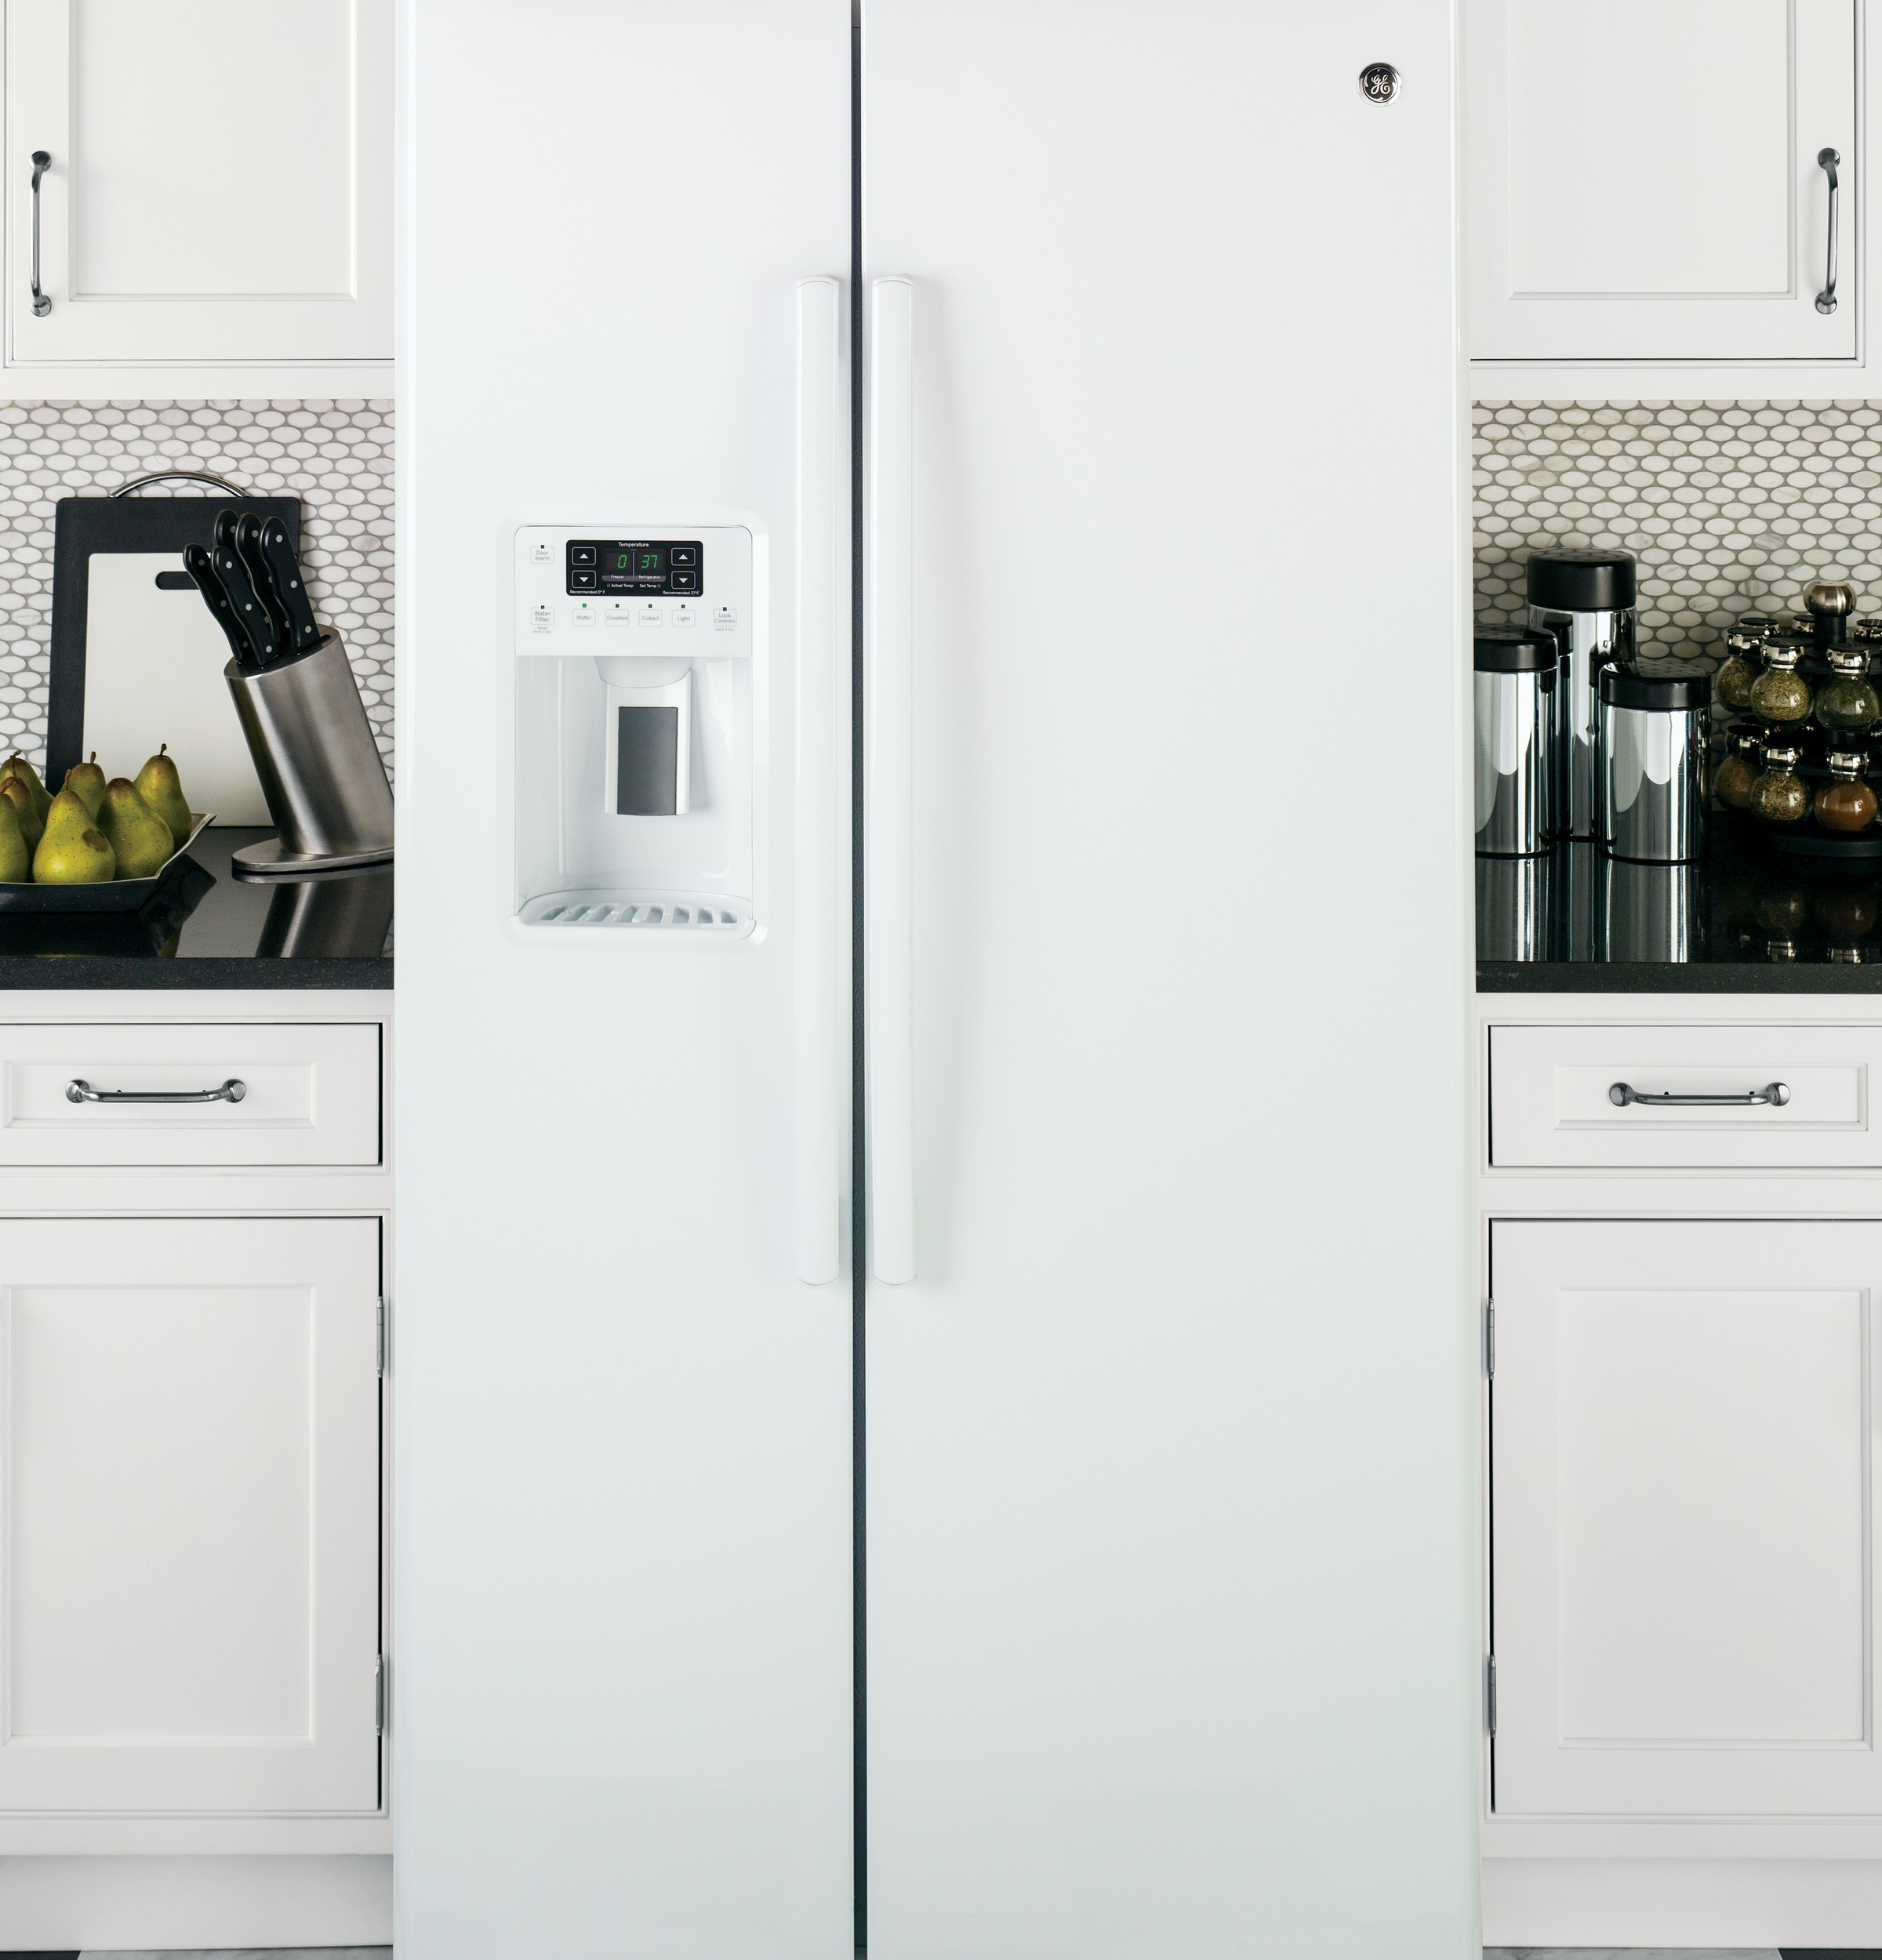 GE Appliances GSS25GGHWW 25.4 cu. ft. Side-By-Side Refrigerator - White